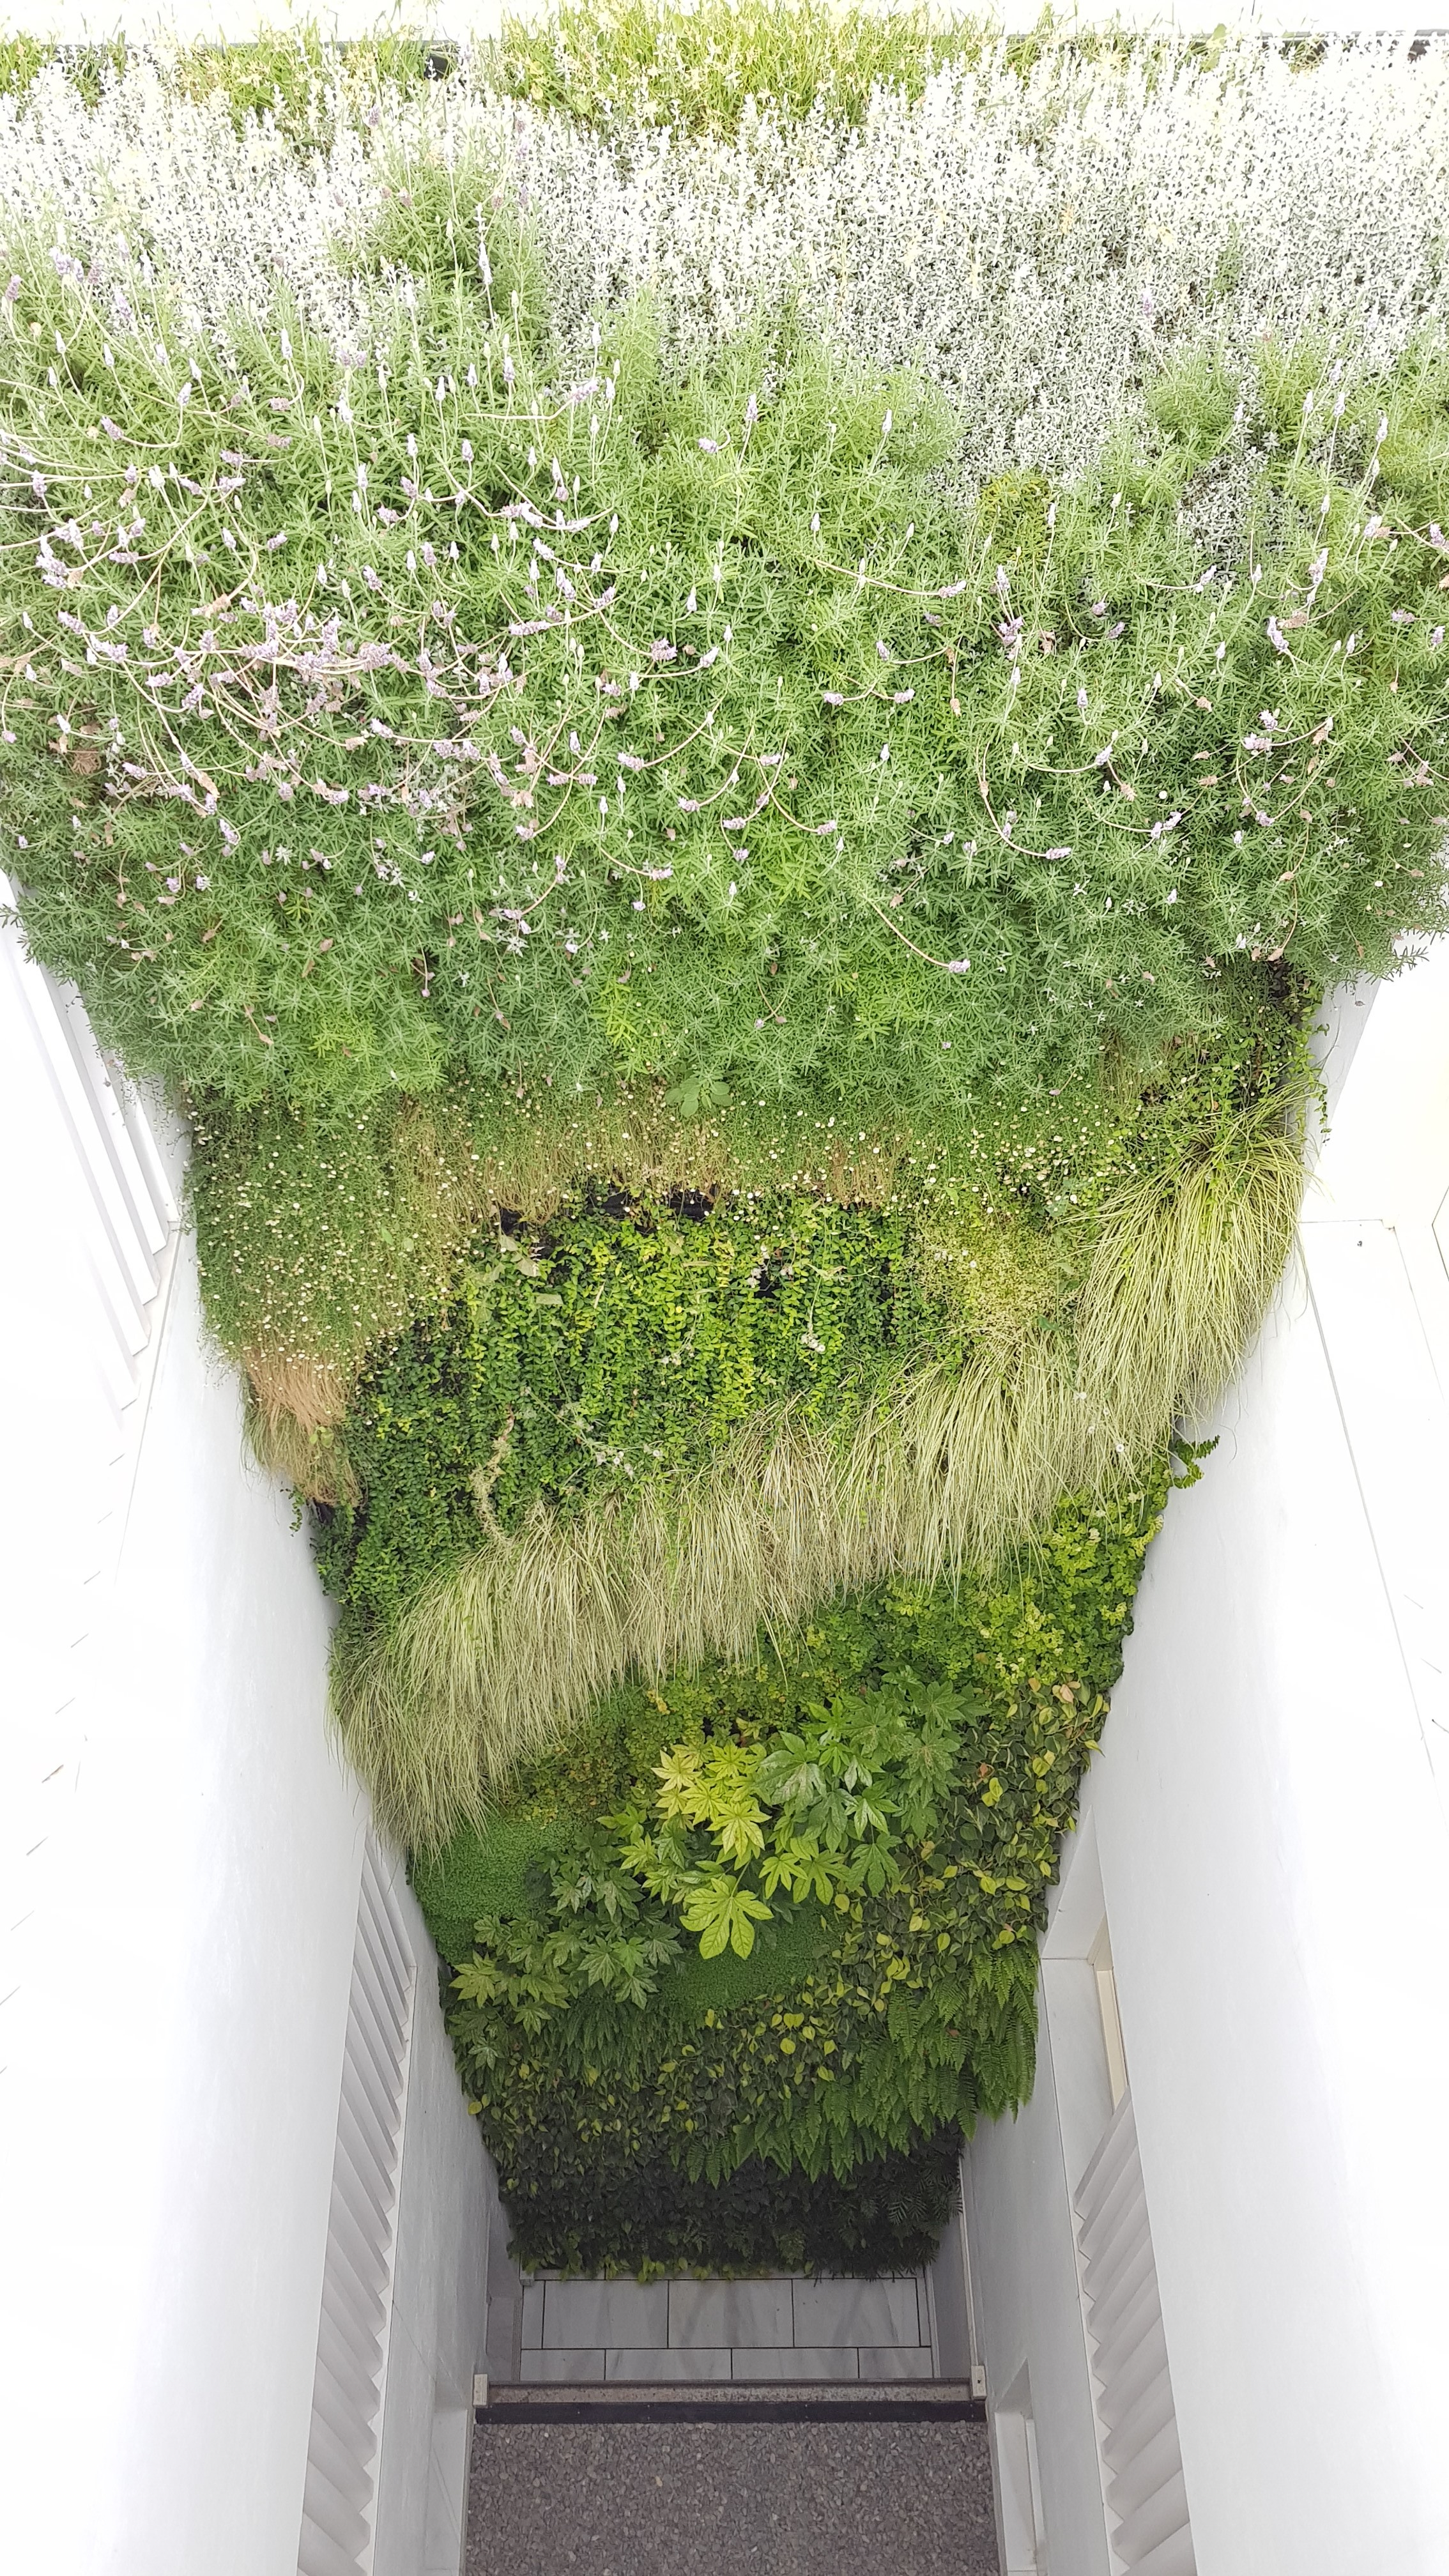 Living Walls CPD for Architects